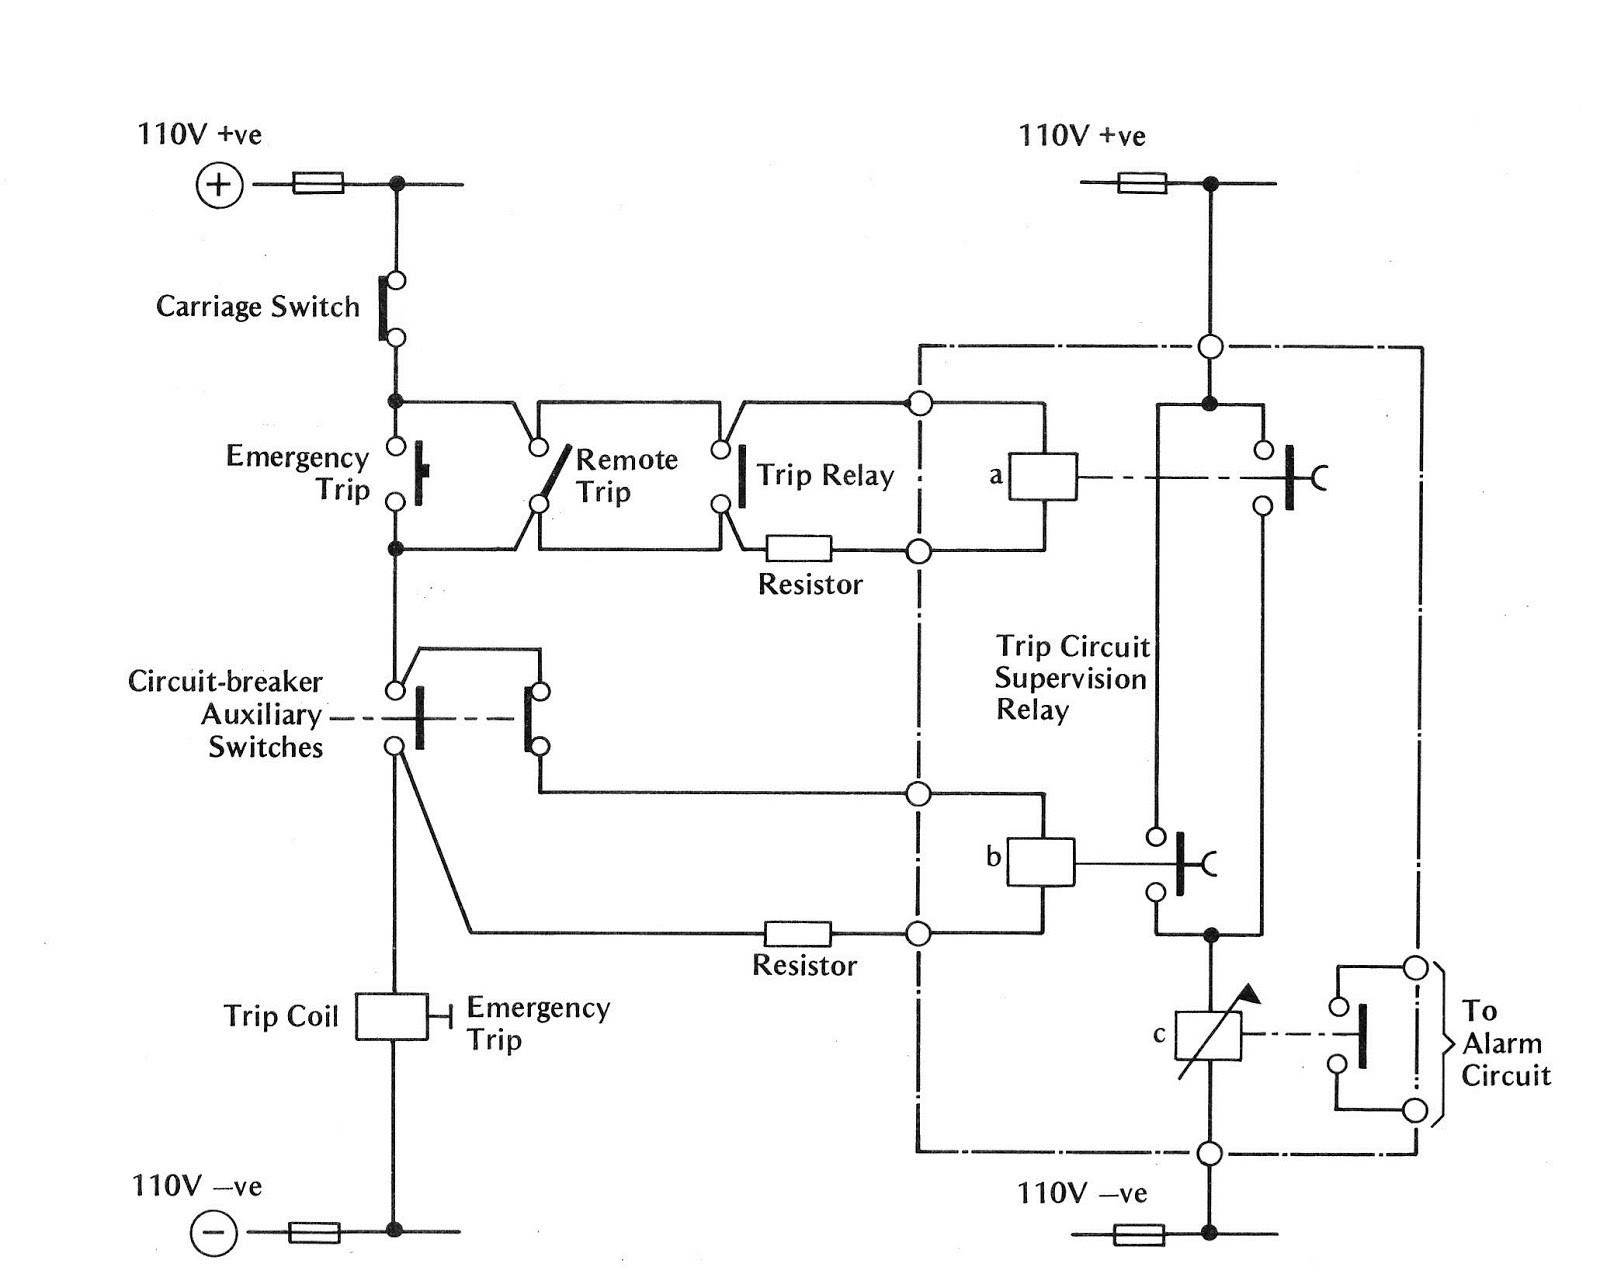 Wire Thermostat Wiring Diagram Shunt Trip Breaker on